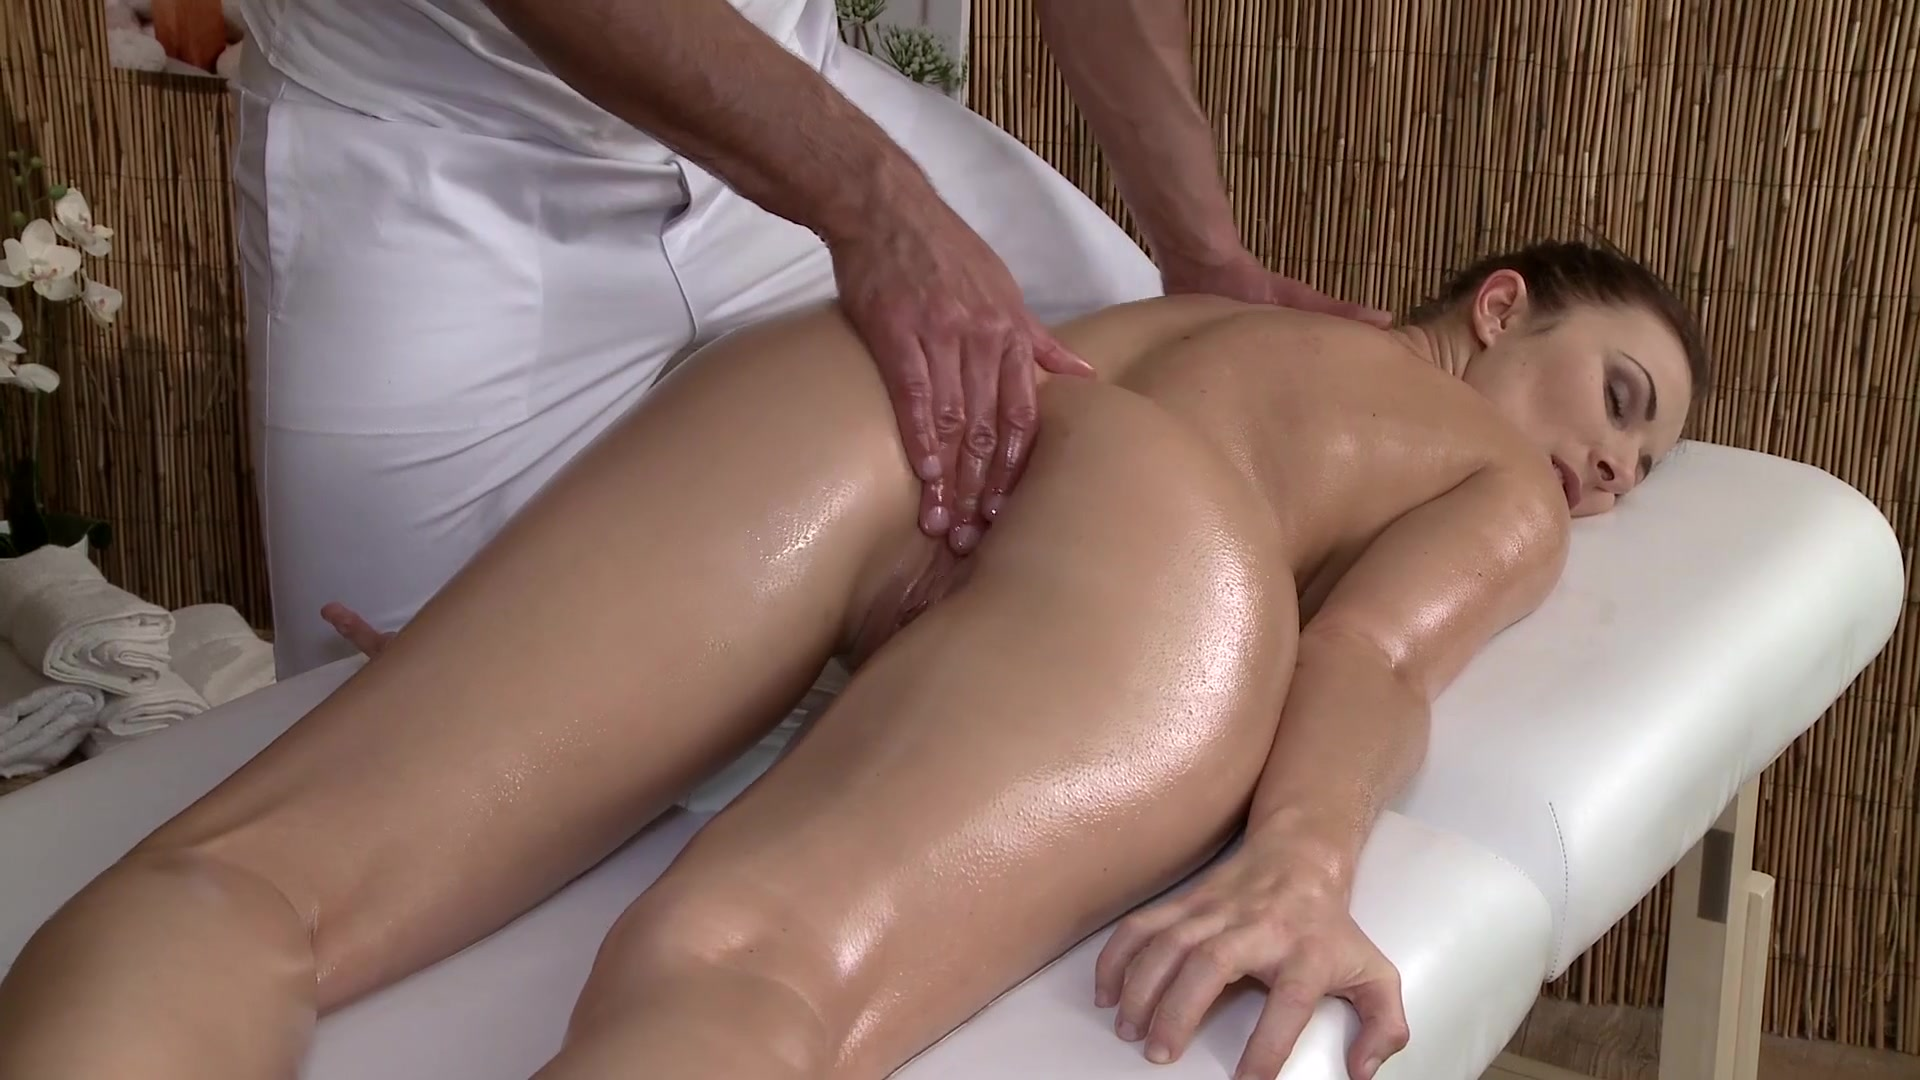 Tube massage sex video females